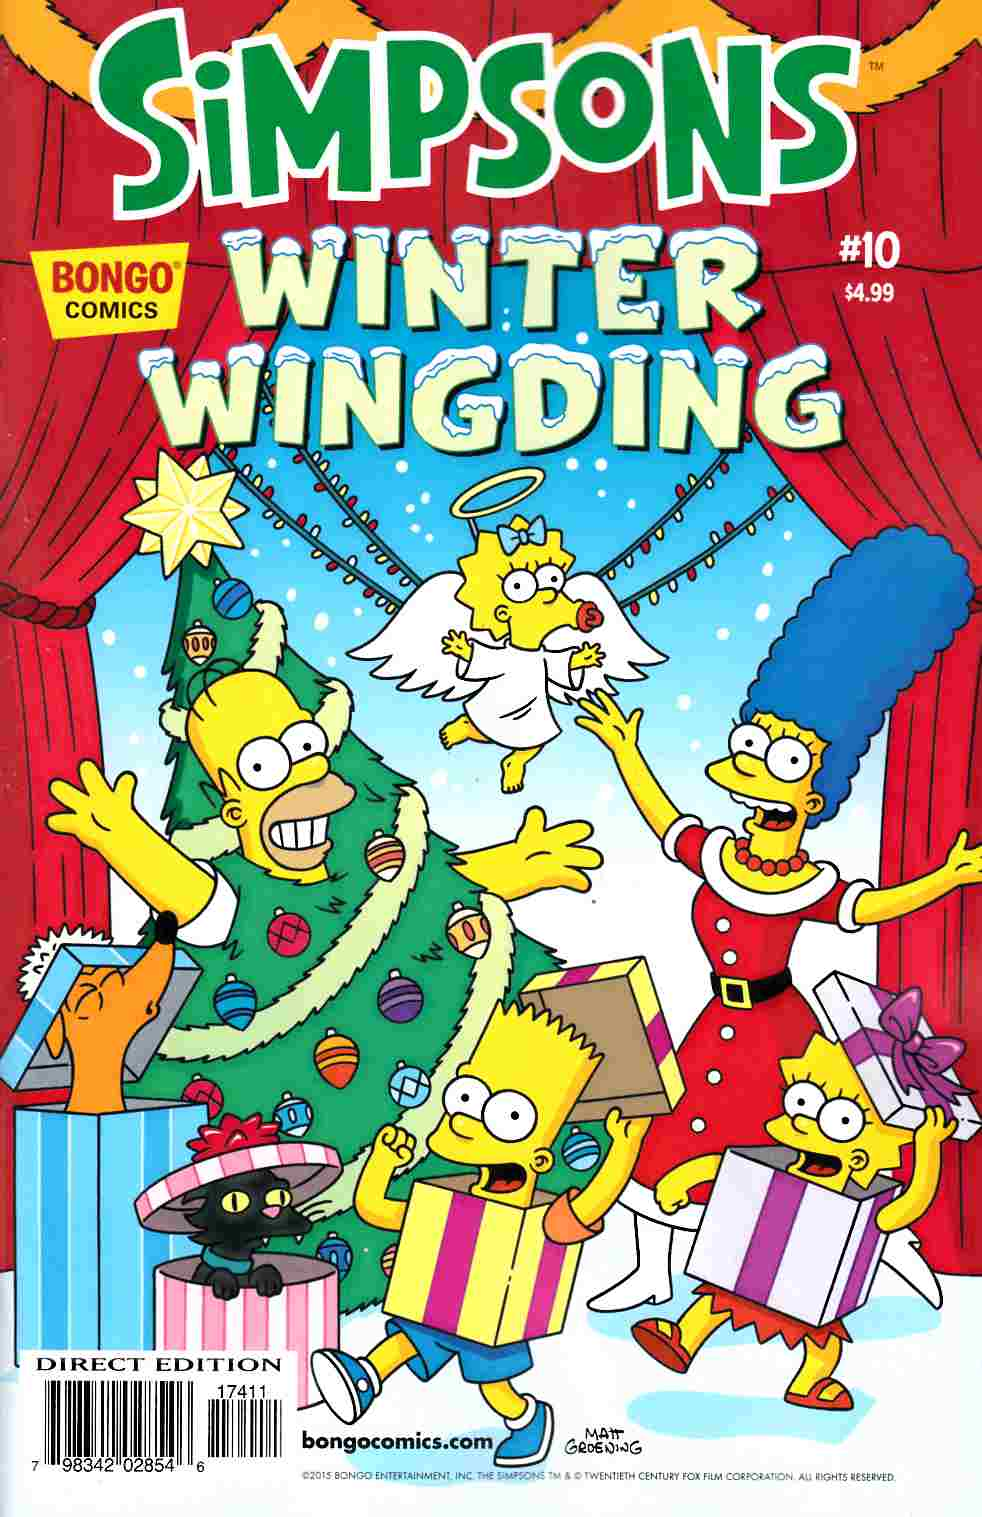 Simpsons Winter Wingding #10 [Bongo Comic] THUMBNAIL